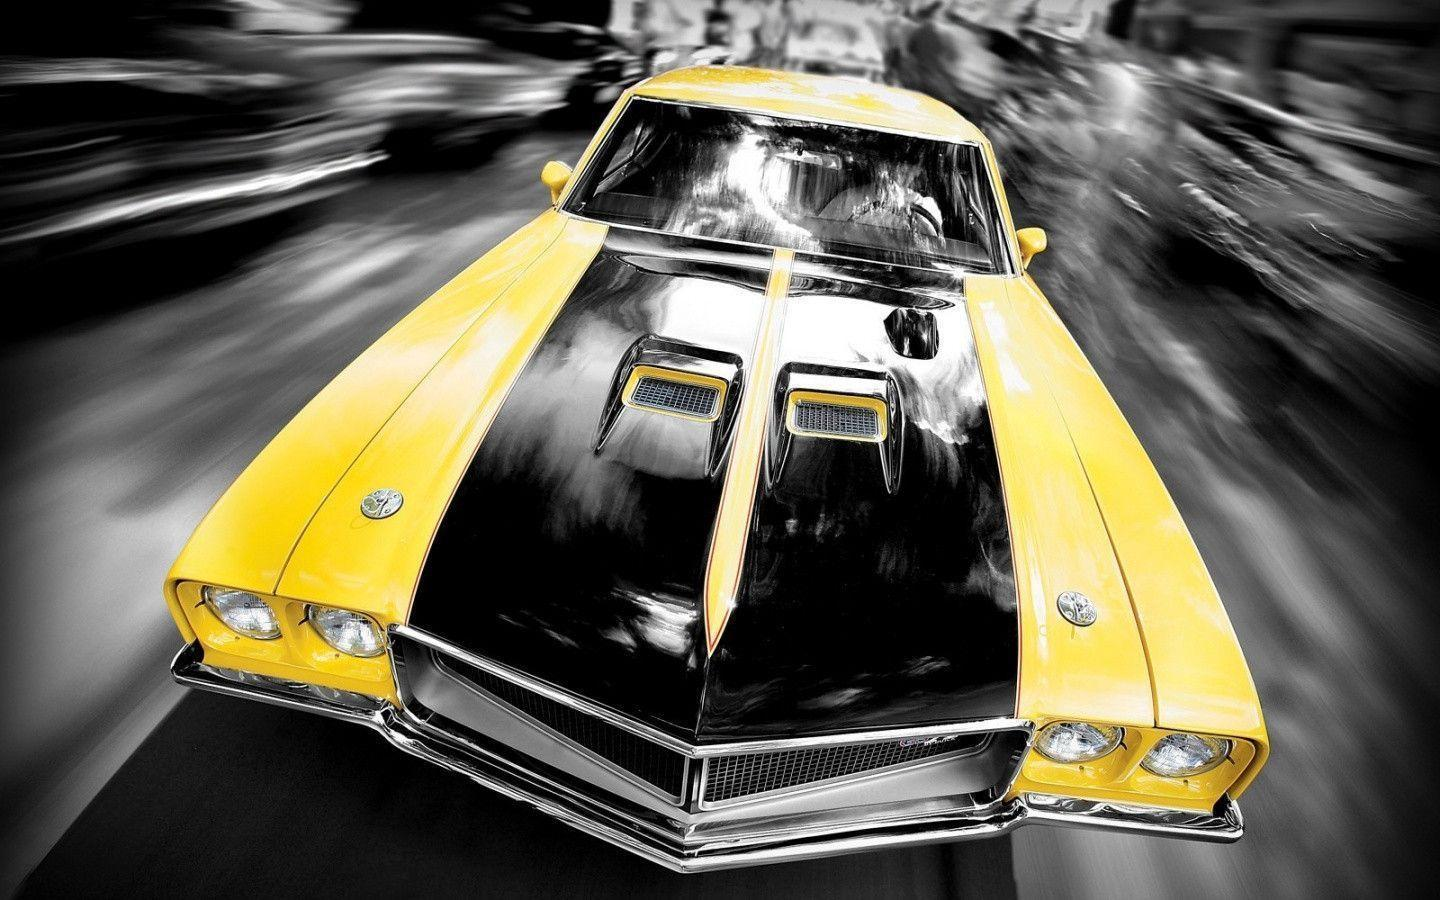 super-fast-cars-wallpapers-6.jpg